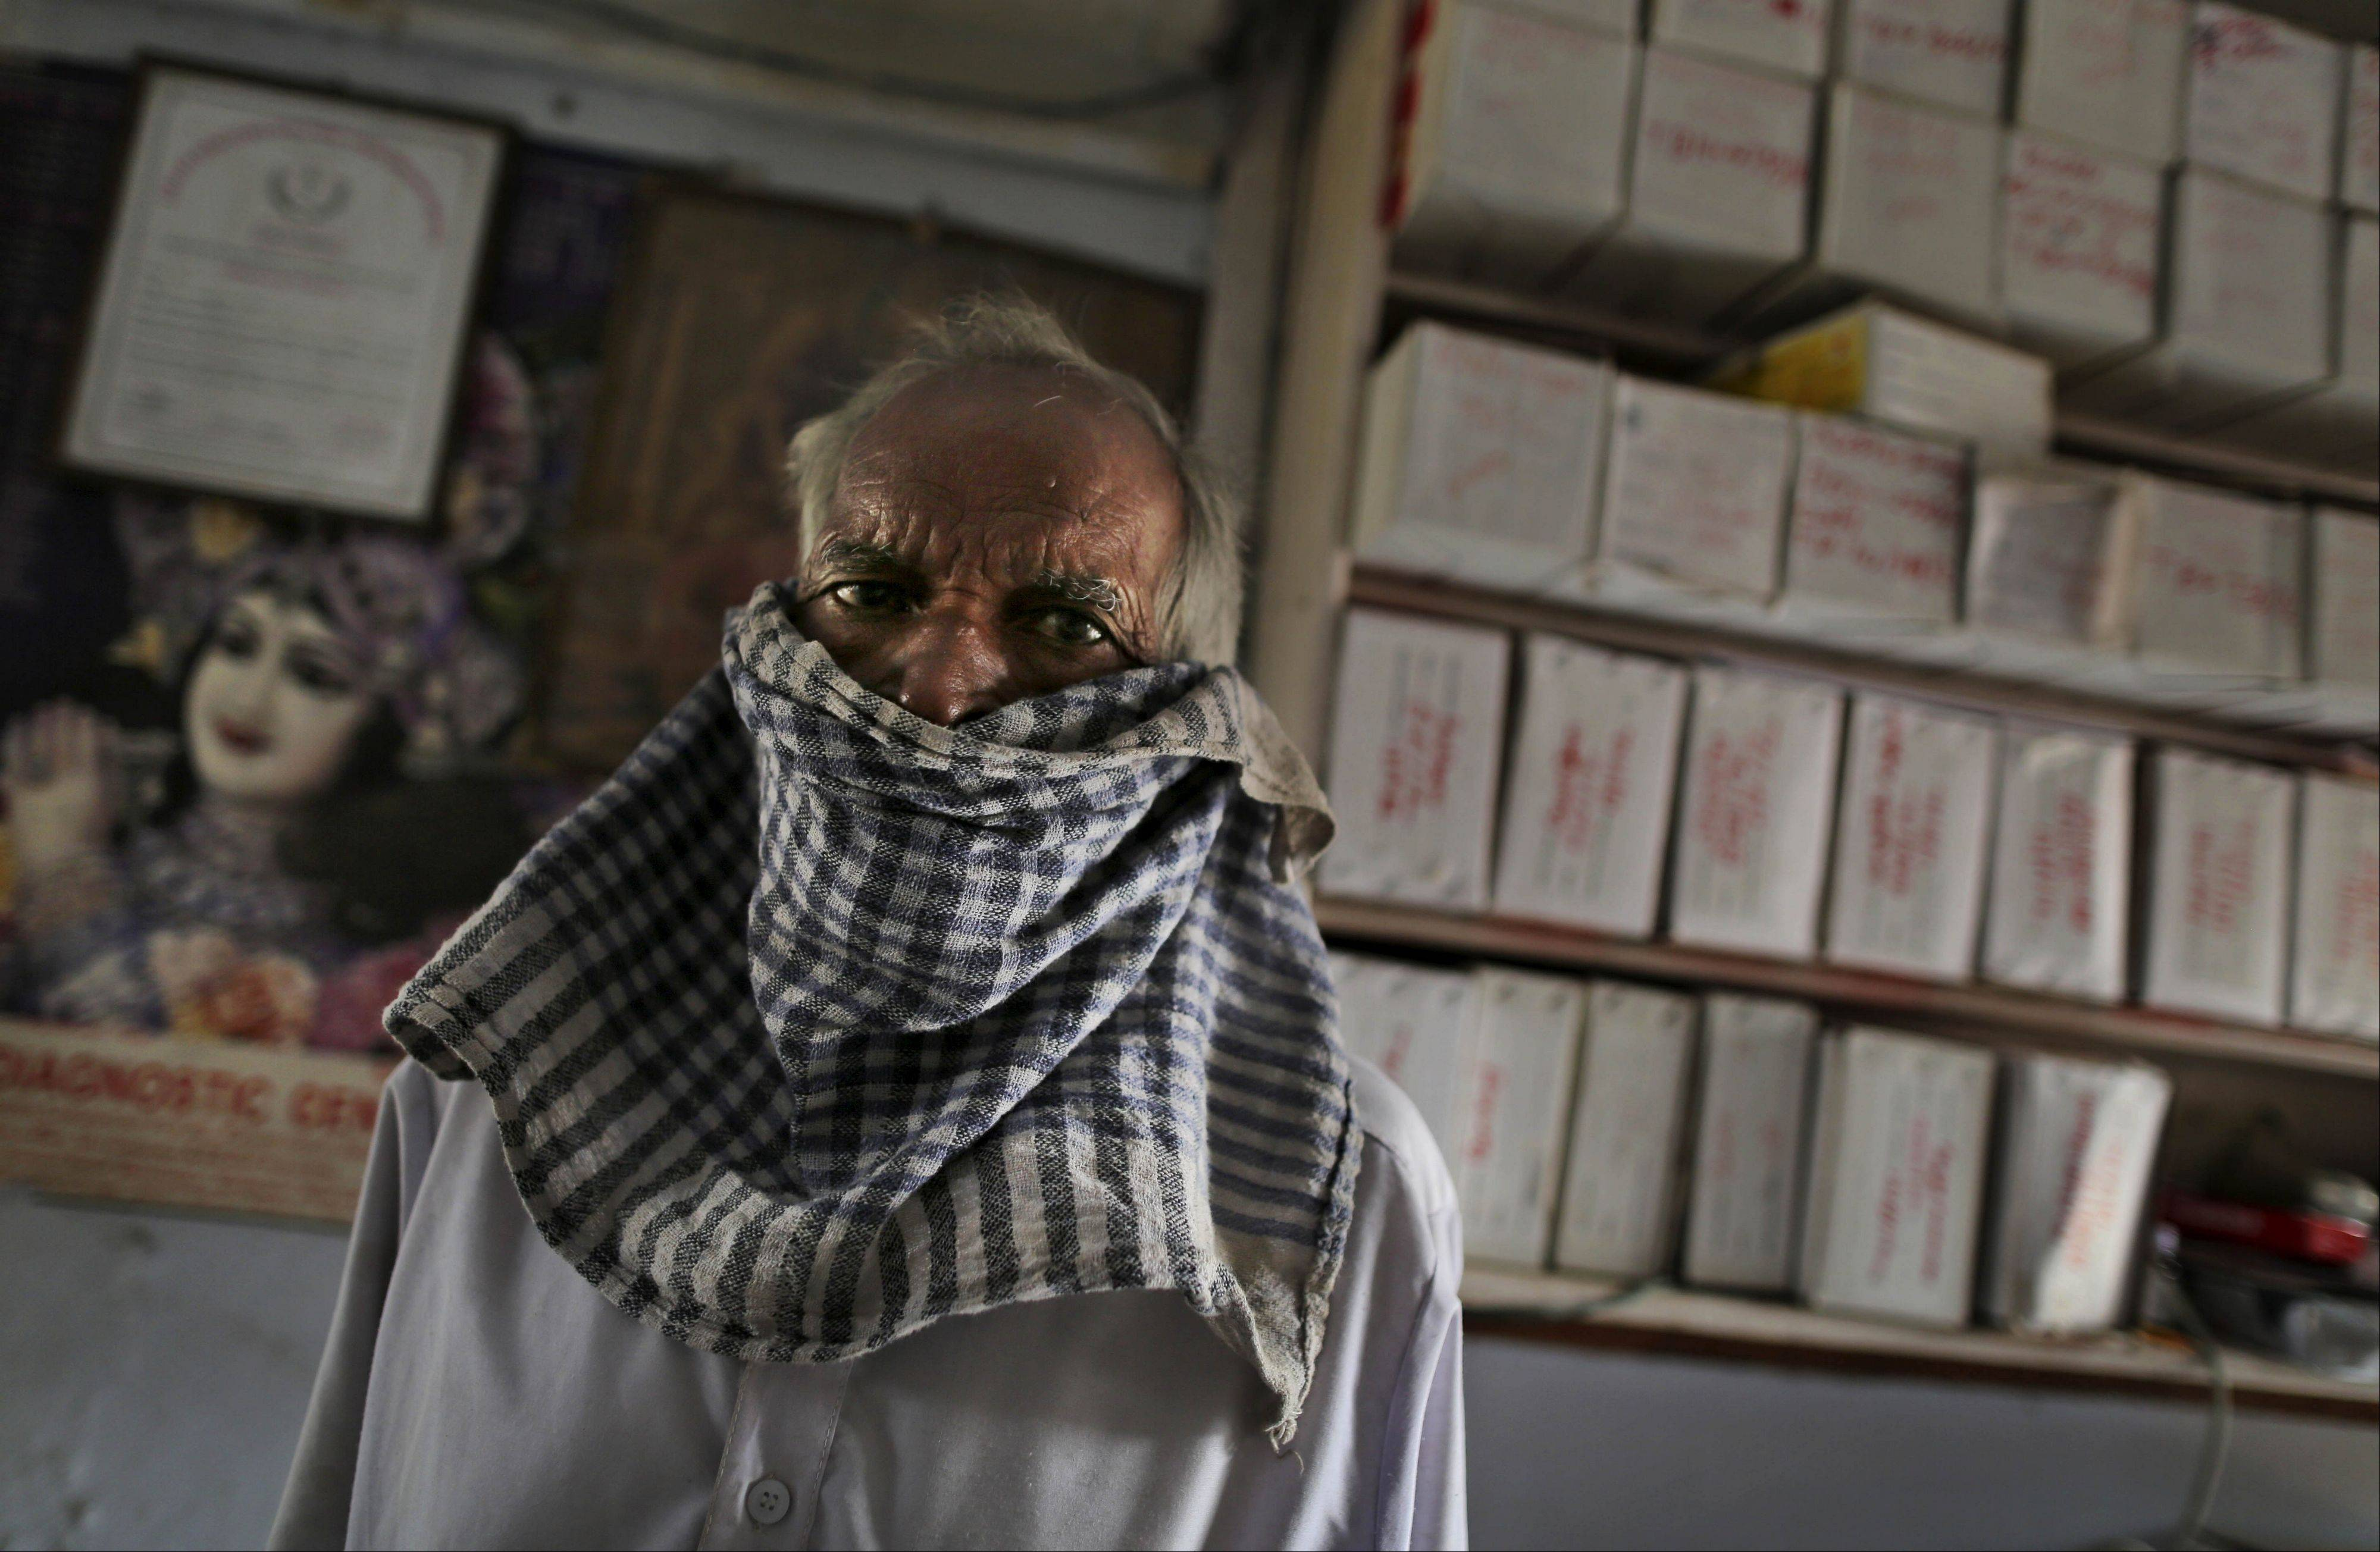 Associated Press/Oct. 22, 2012 A tuberculosis patient, wearing a cloth over his mouth, waits in front of boxes of medication at an Operation ASHA program center in New Delhi.